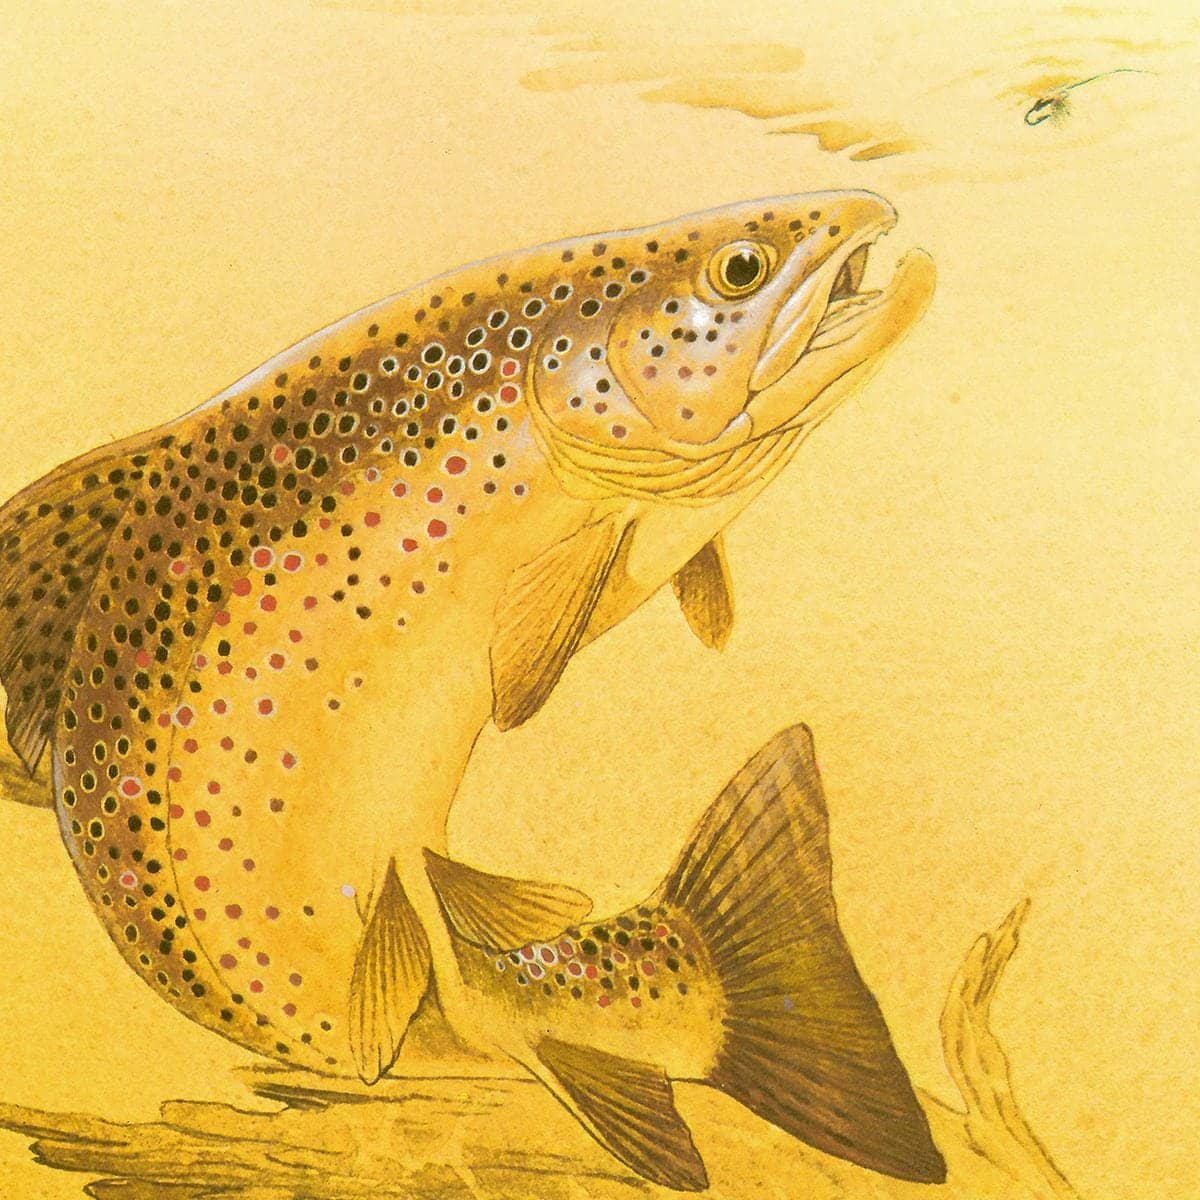 Brown Trout - Canvas Print by Glen Loates from the Glen Loates Store